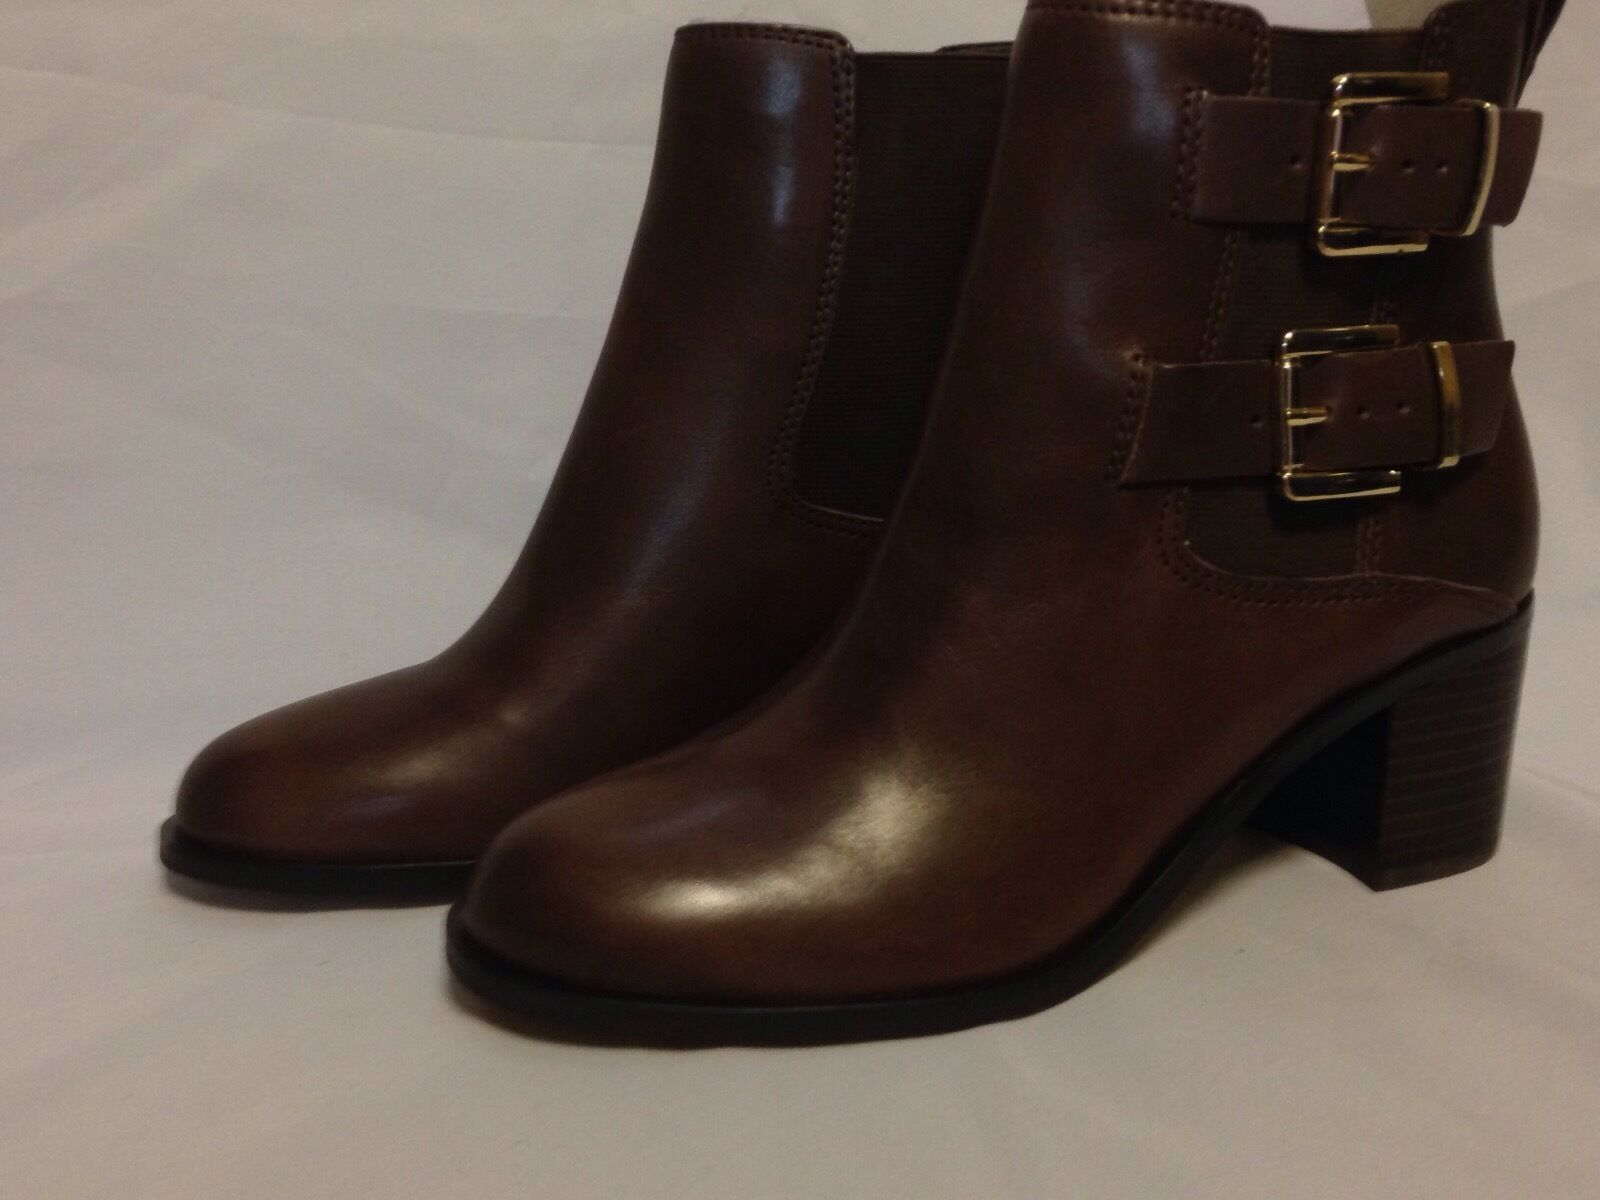 Sam Sam Sam Edelman Jodie Ankle démarrage 8.5 M Dark marron Leather  New w Box bcf89c